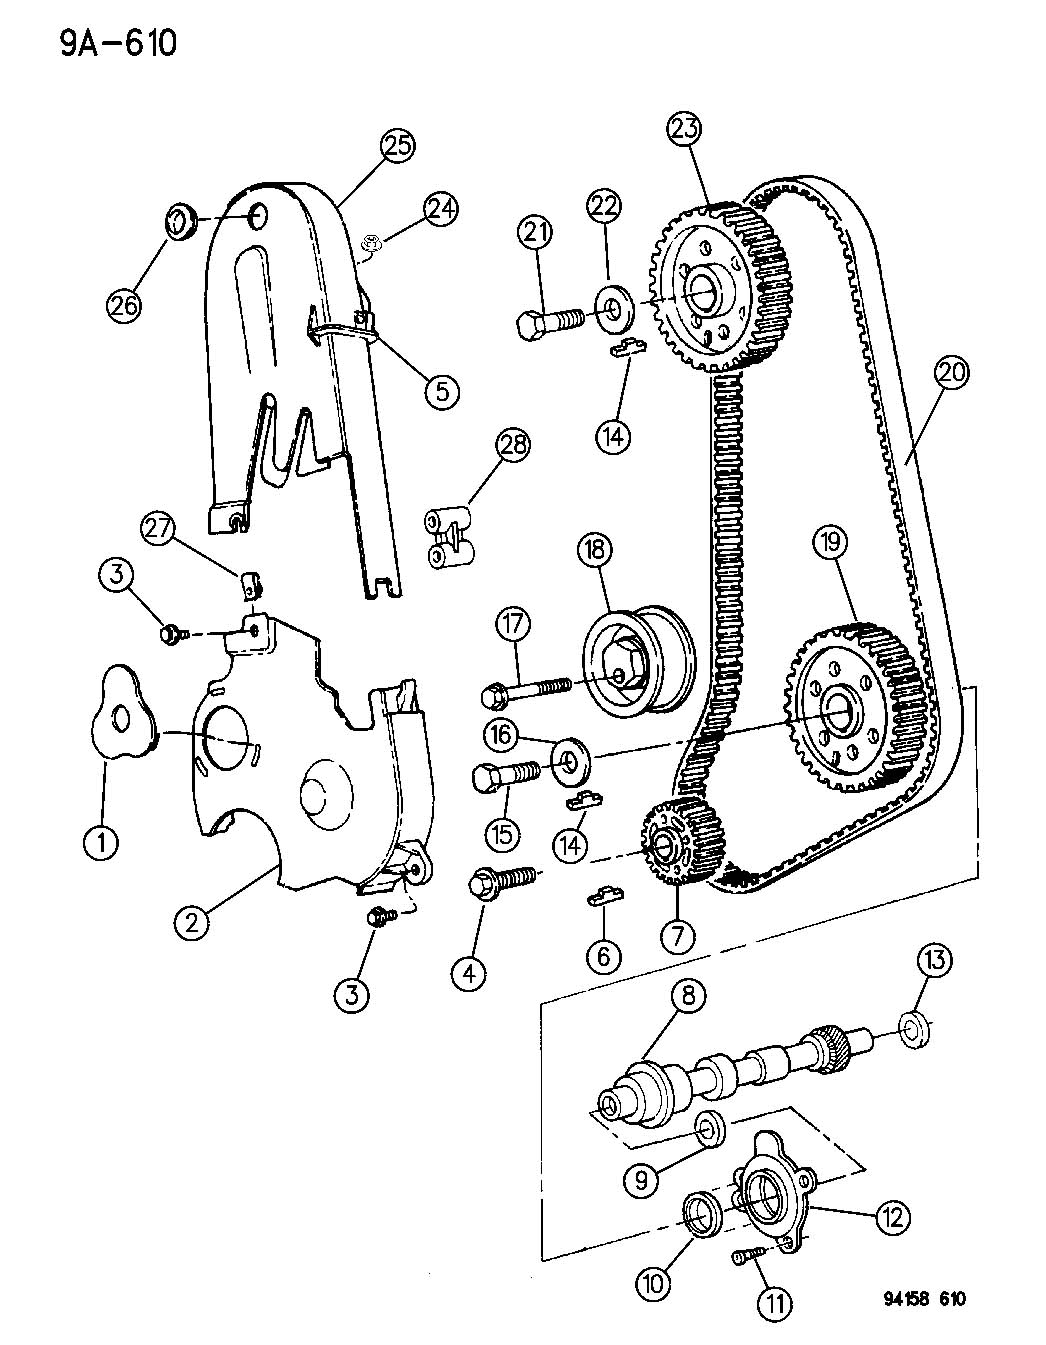 2008 toyota fj cruiser belt diagram html